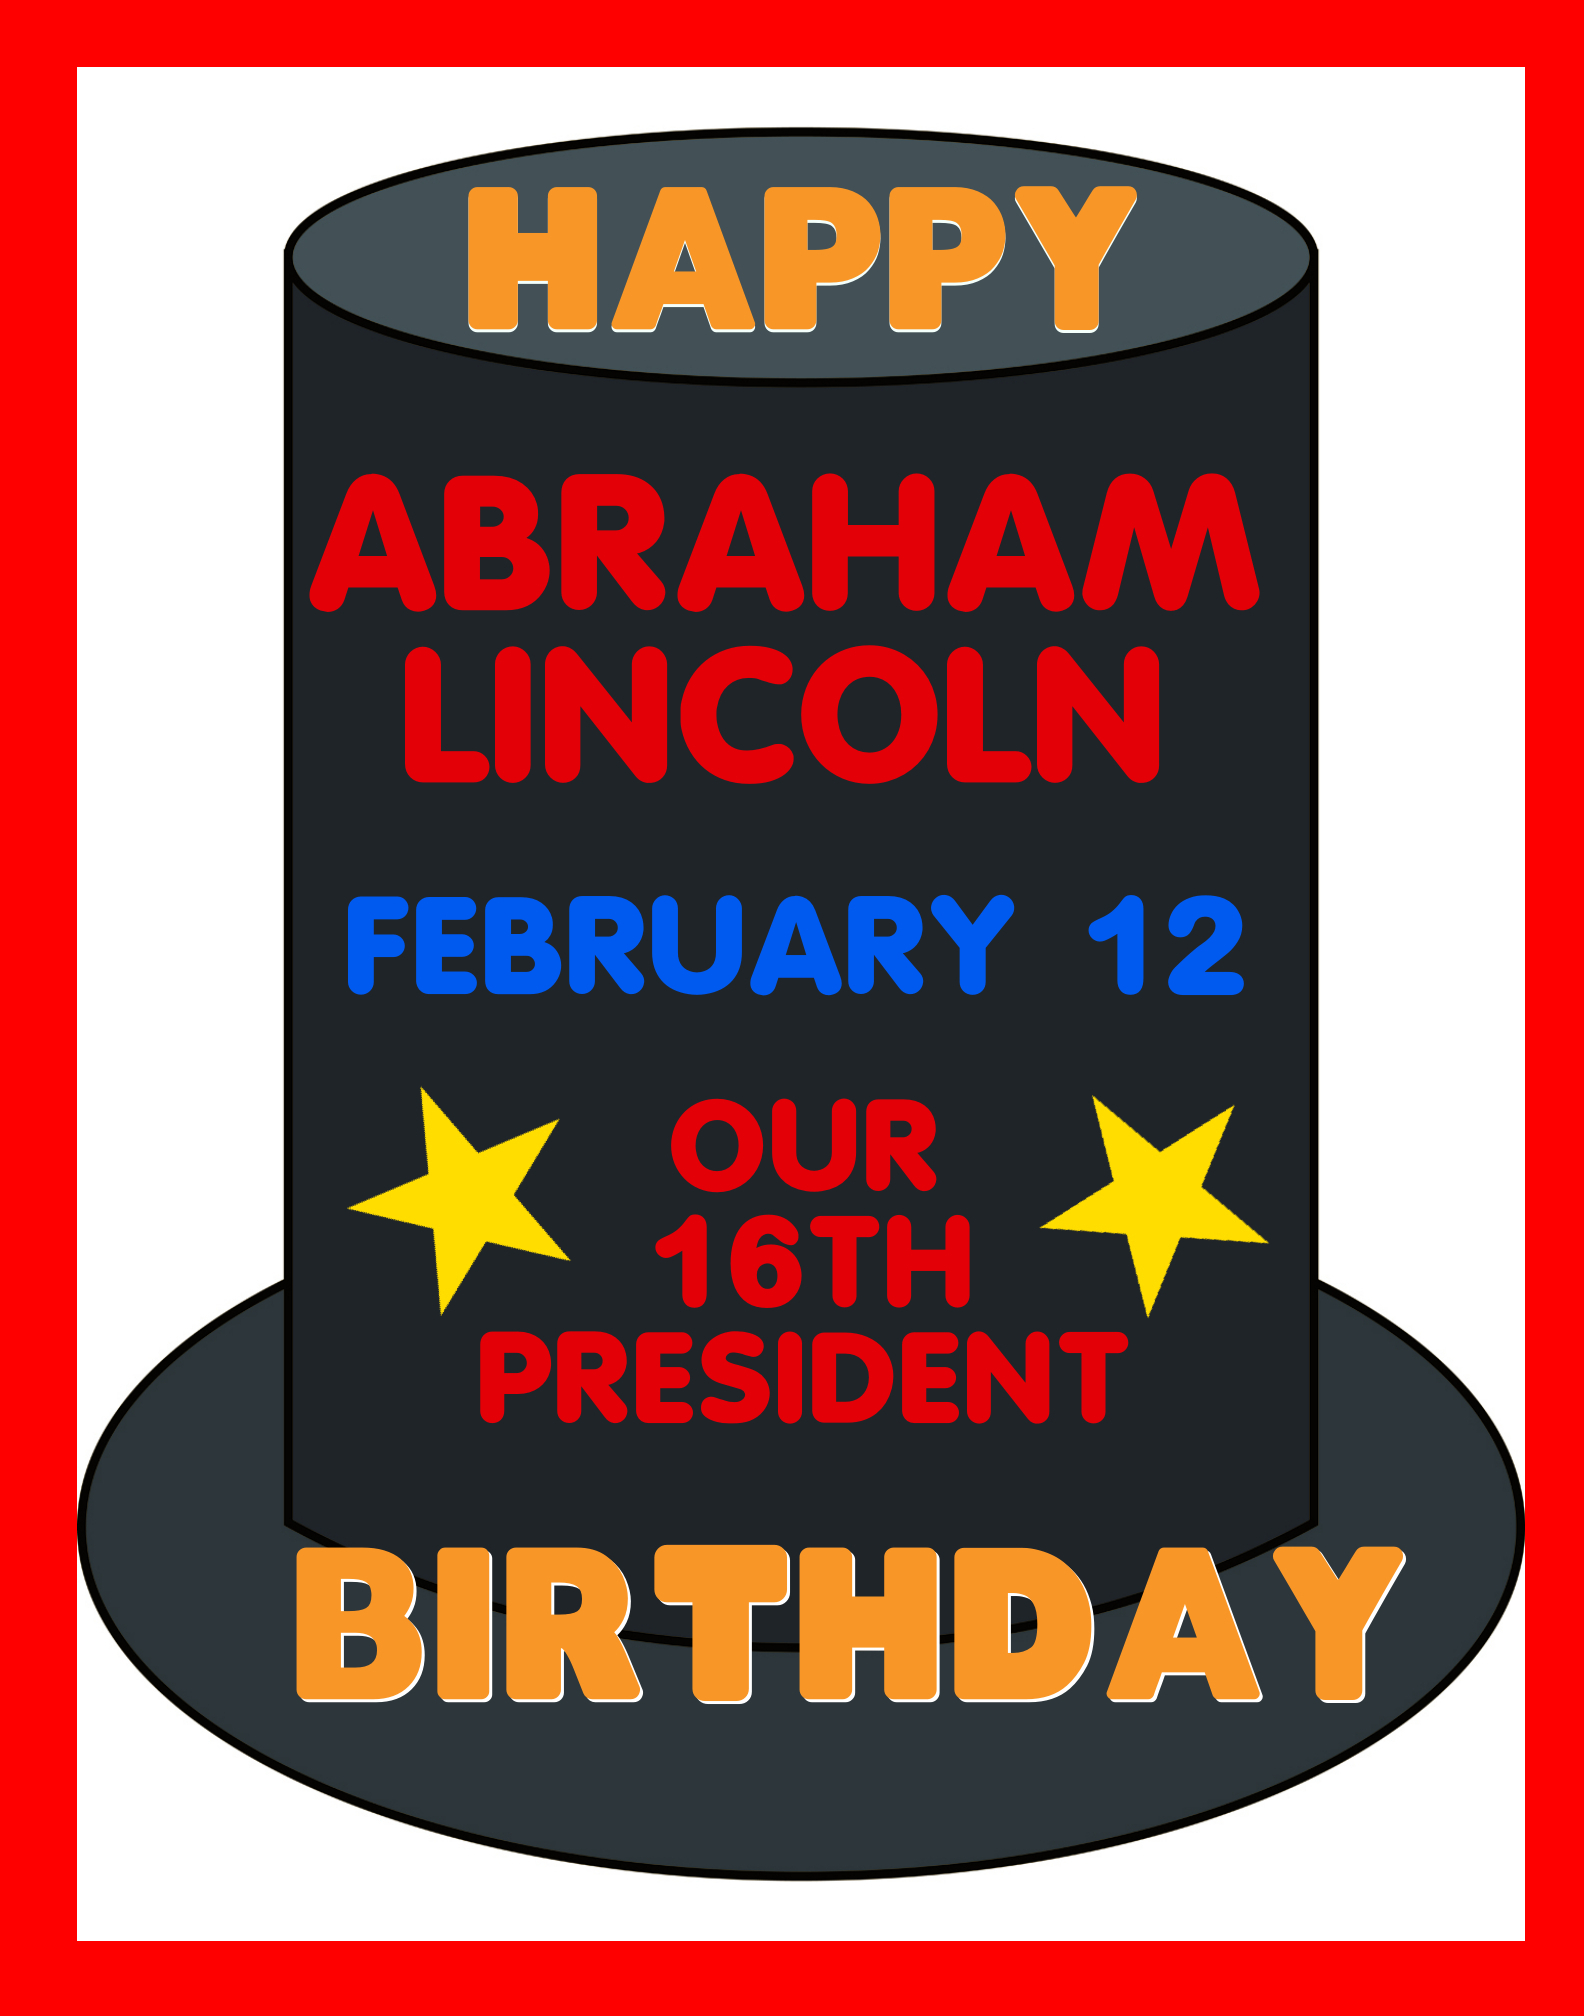 Make A Happy Birthday Poster About Abraham Lincoln